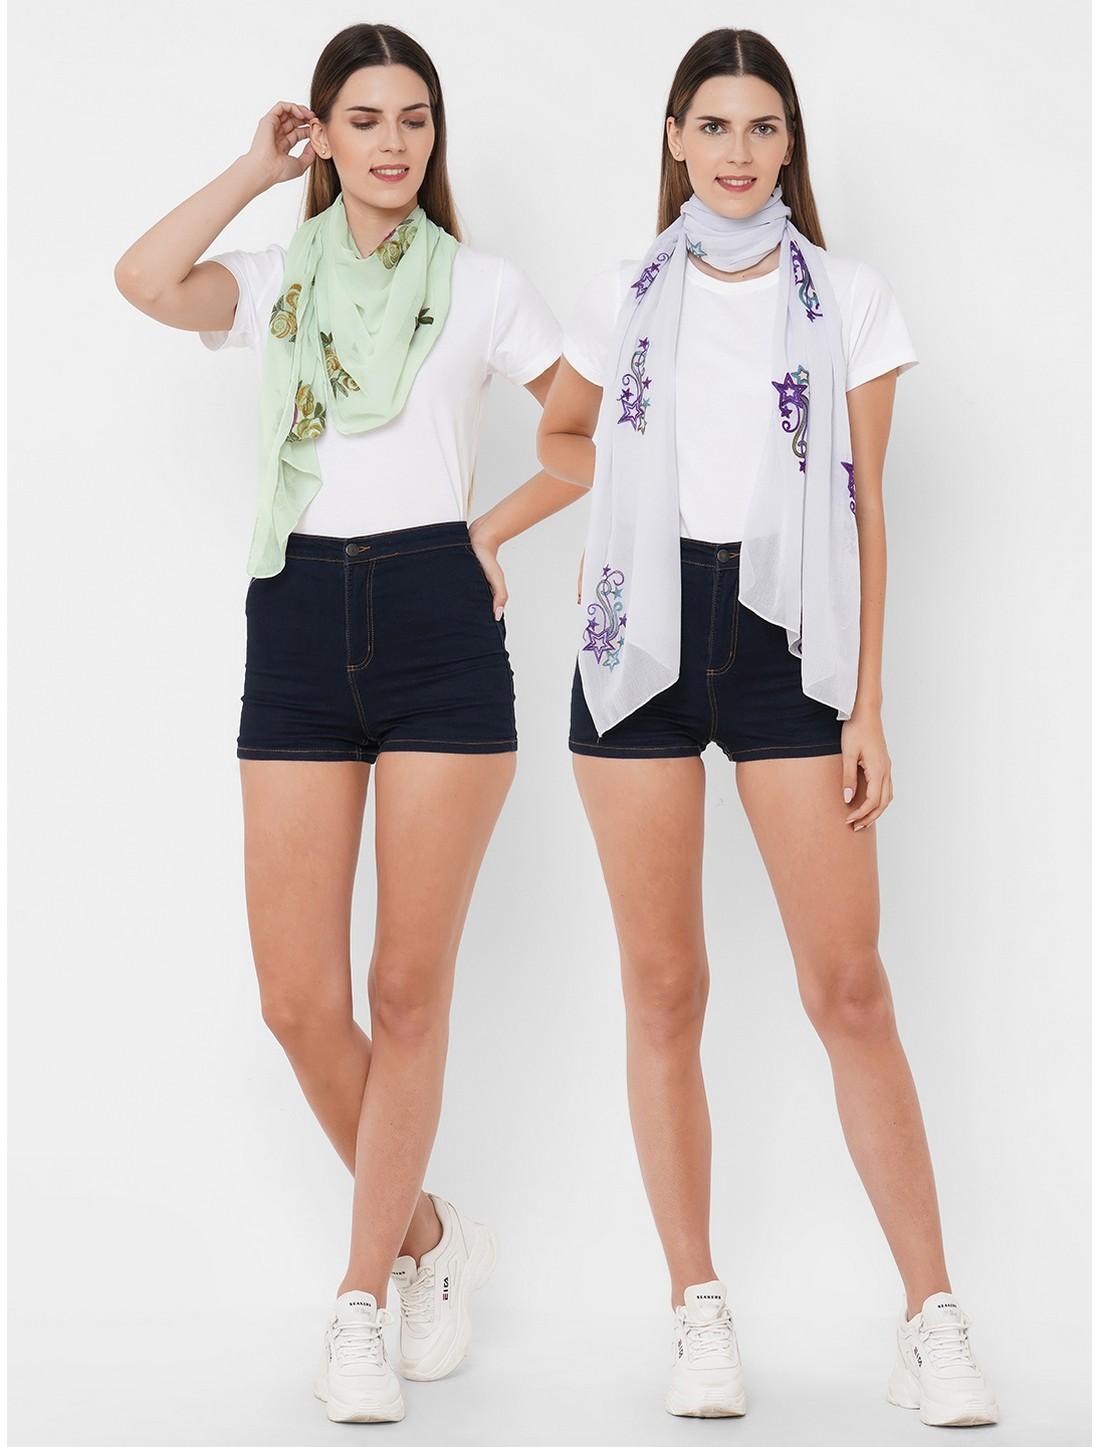 Get Wrapped | Get Wrapped Polyester Embroidered Multicolor Scarves - Combo Pack of 2